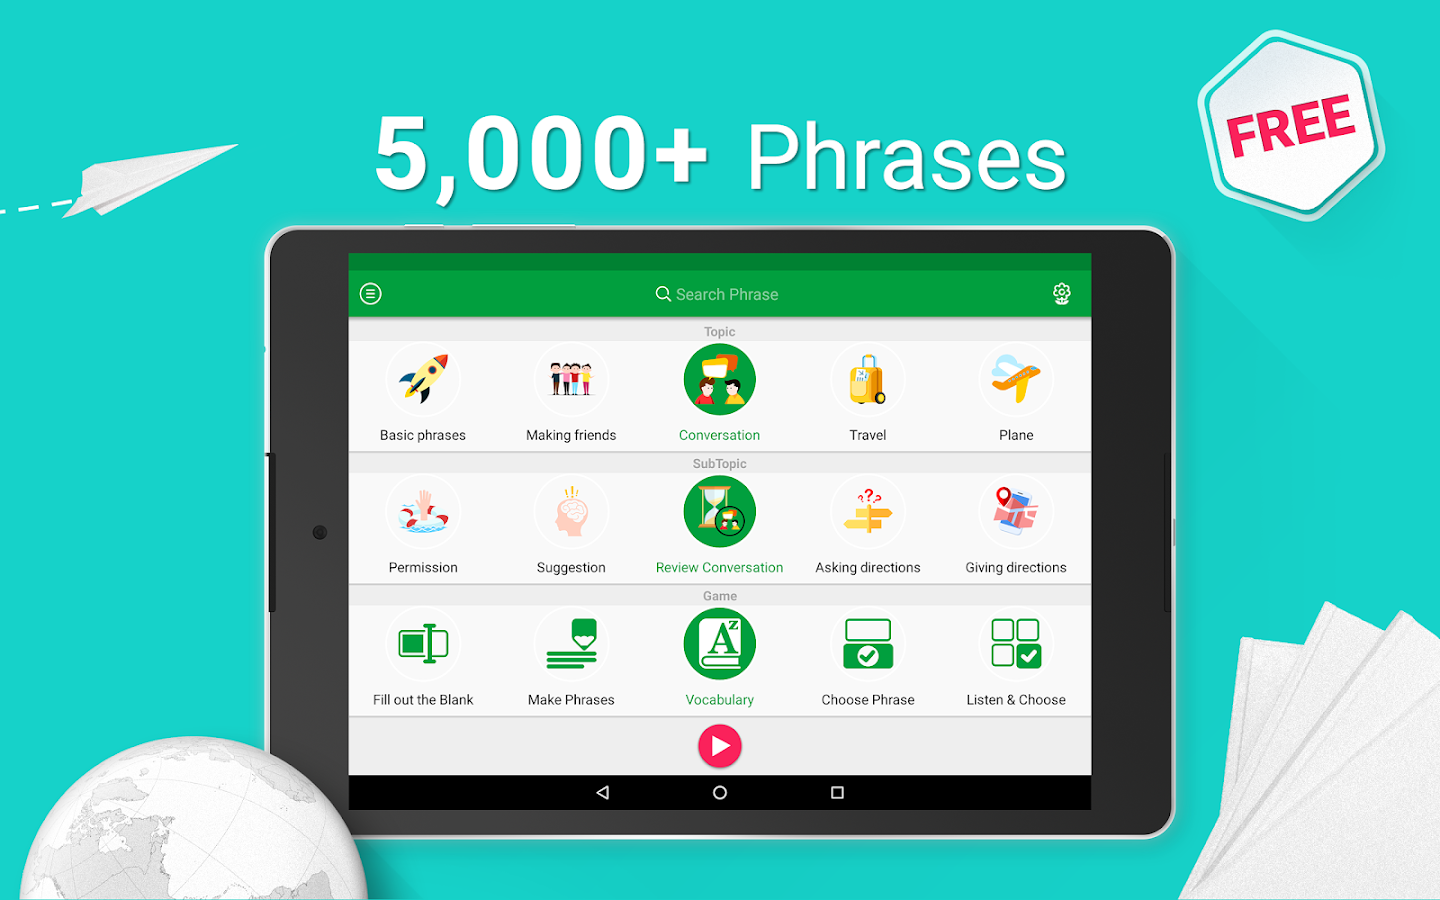 Learn Spanish - 5,000 Phrases Screenshot 8